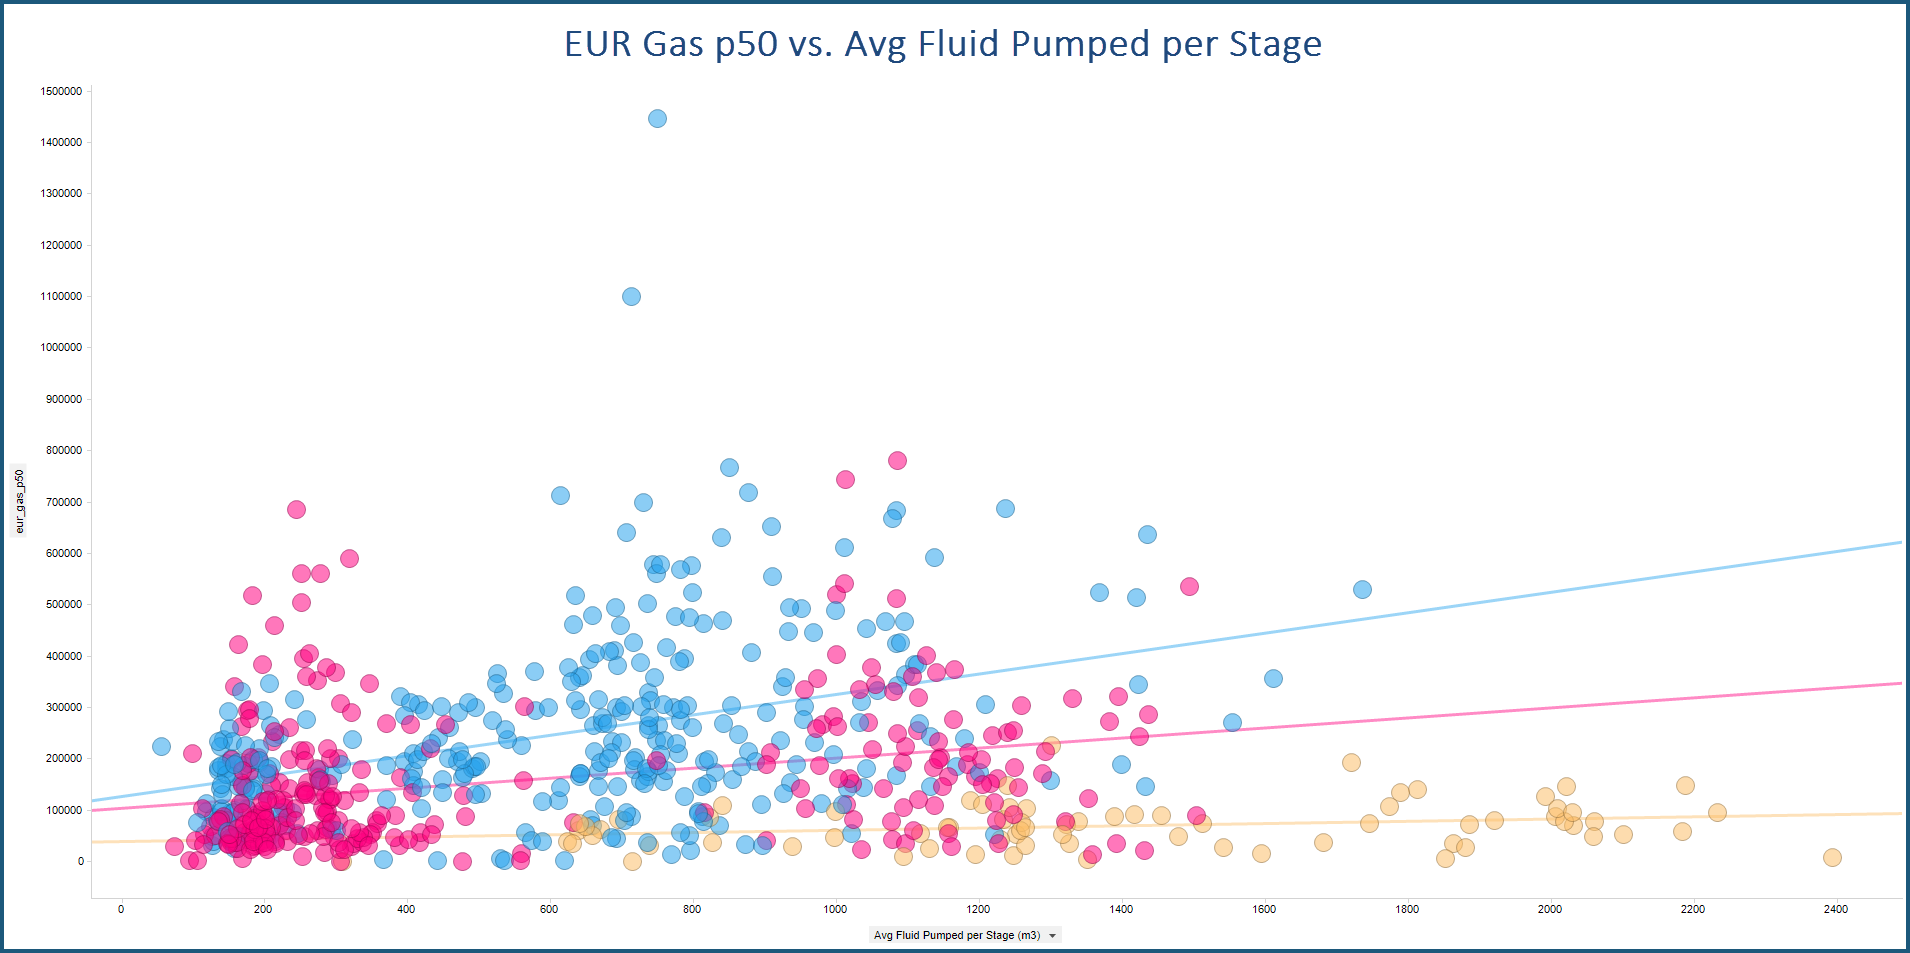 geoLOGIC basinINTEL powered by BetaZiTM - EUR Gas p50 vs. Avg Fluid Pumped per Stage Sample